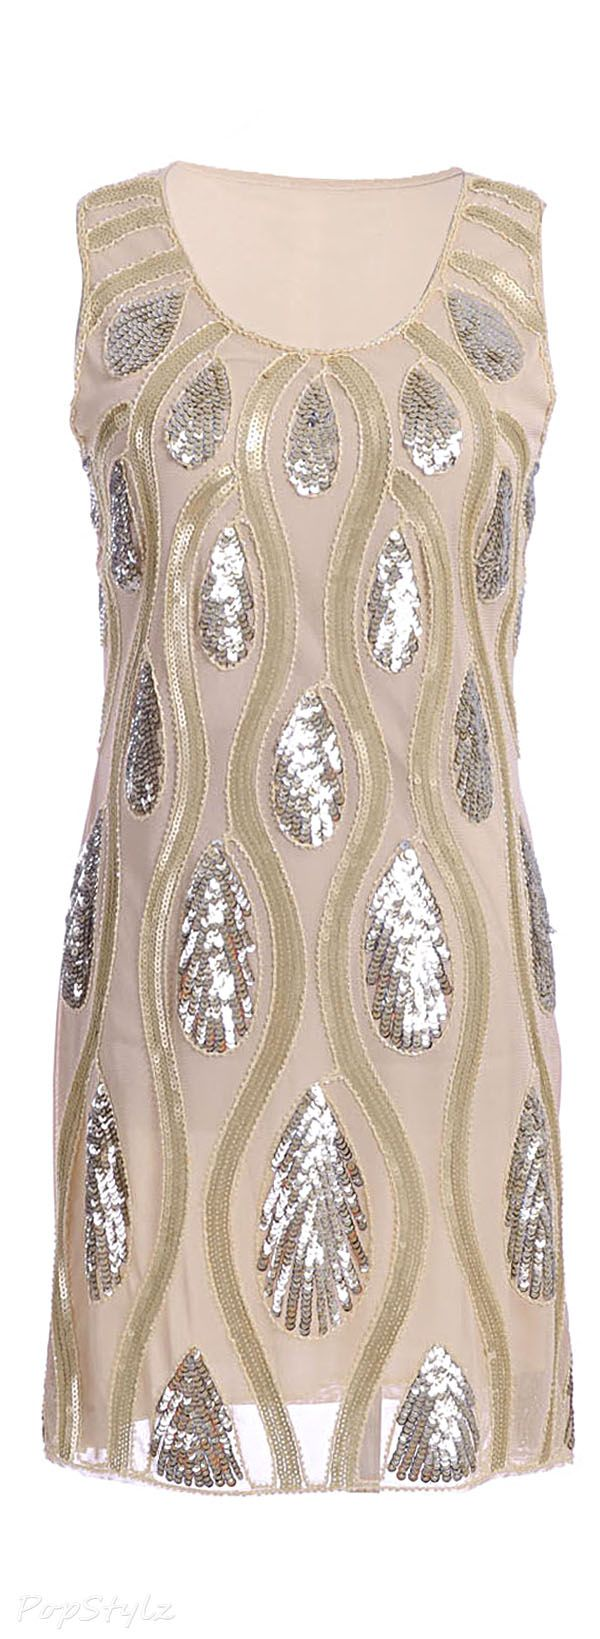 Shimmering Peacock Feather Sequin & Beads Dress | Clothes